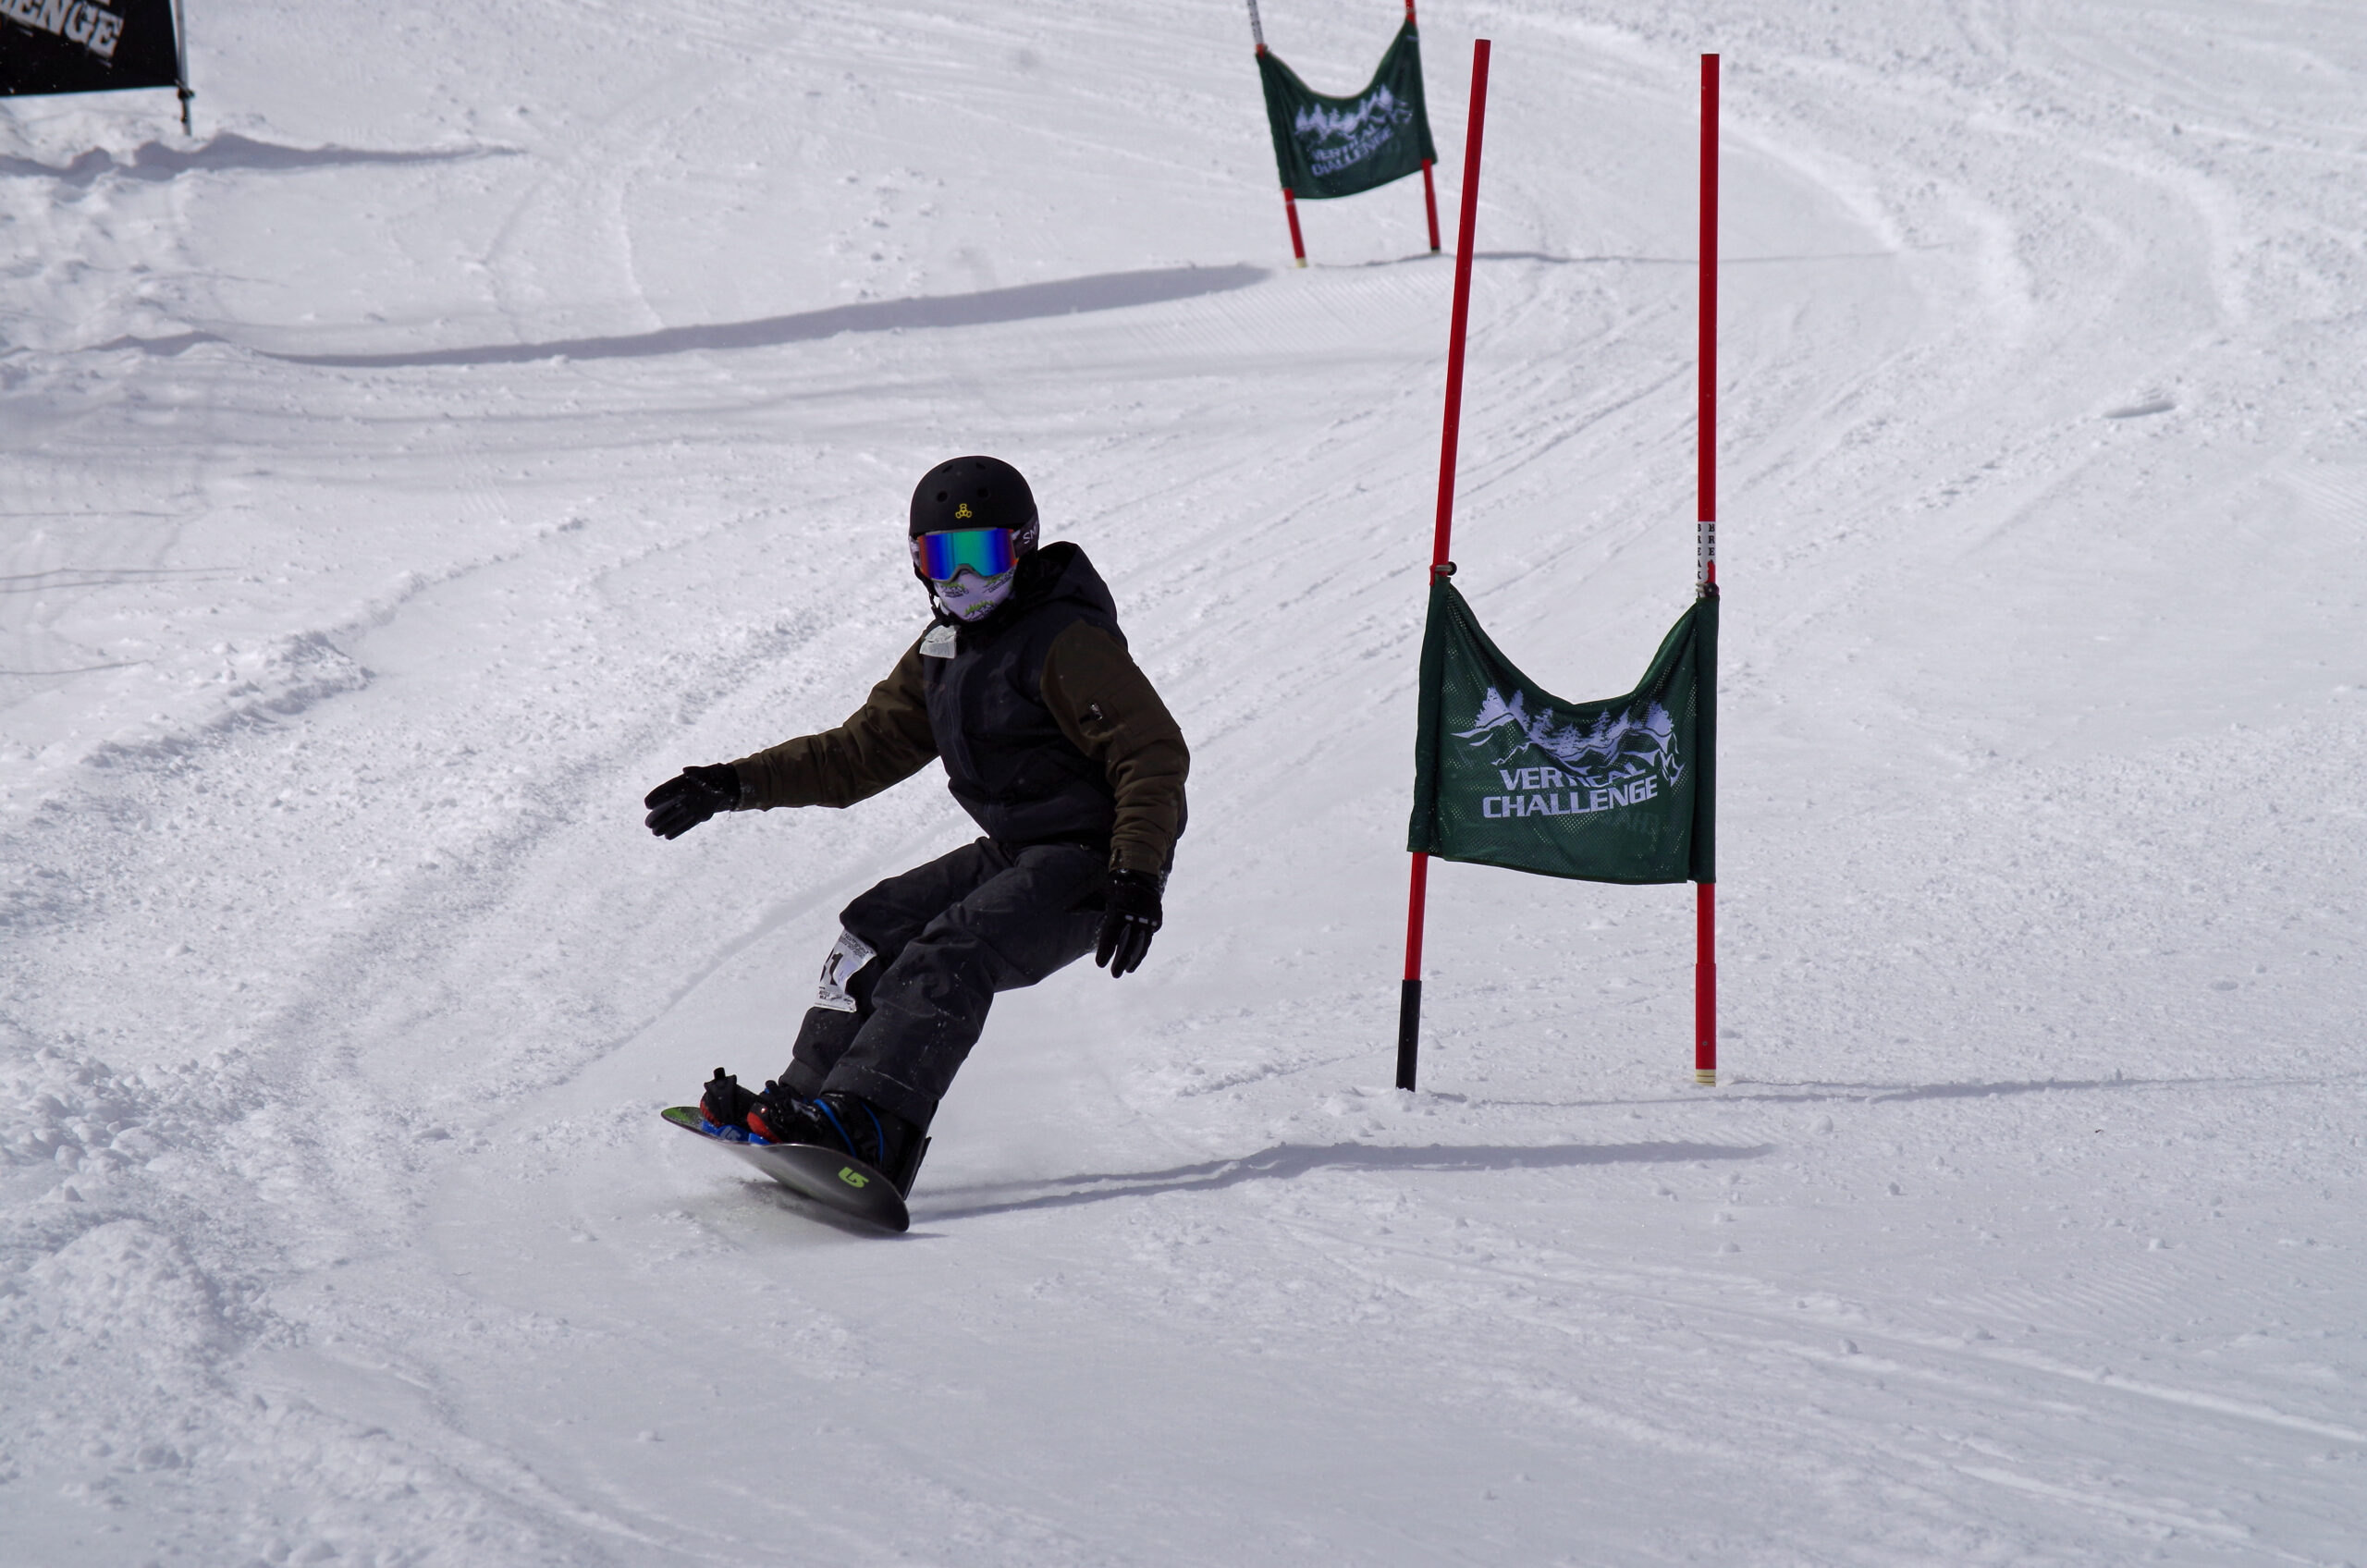 Snowboarder at the VC Finals